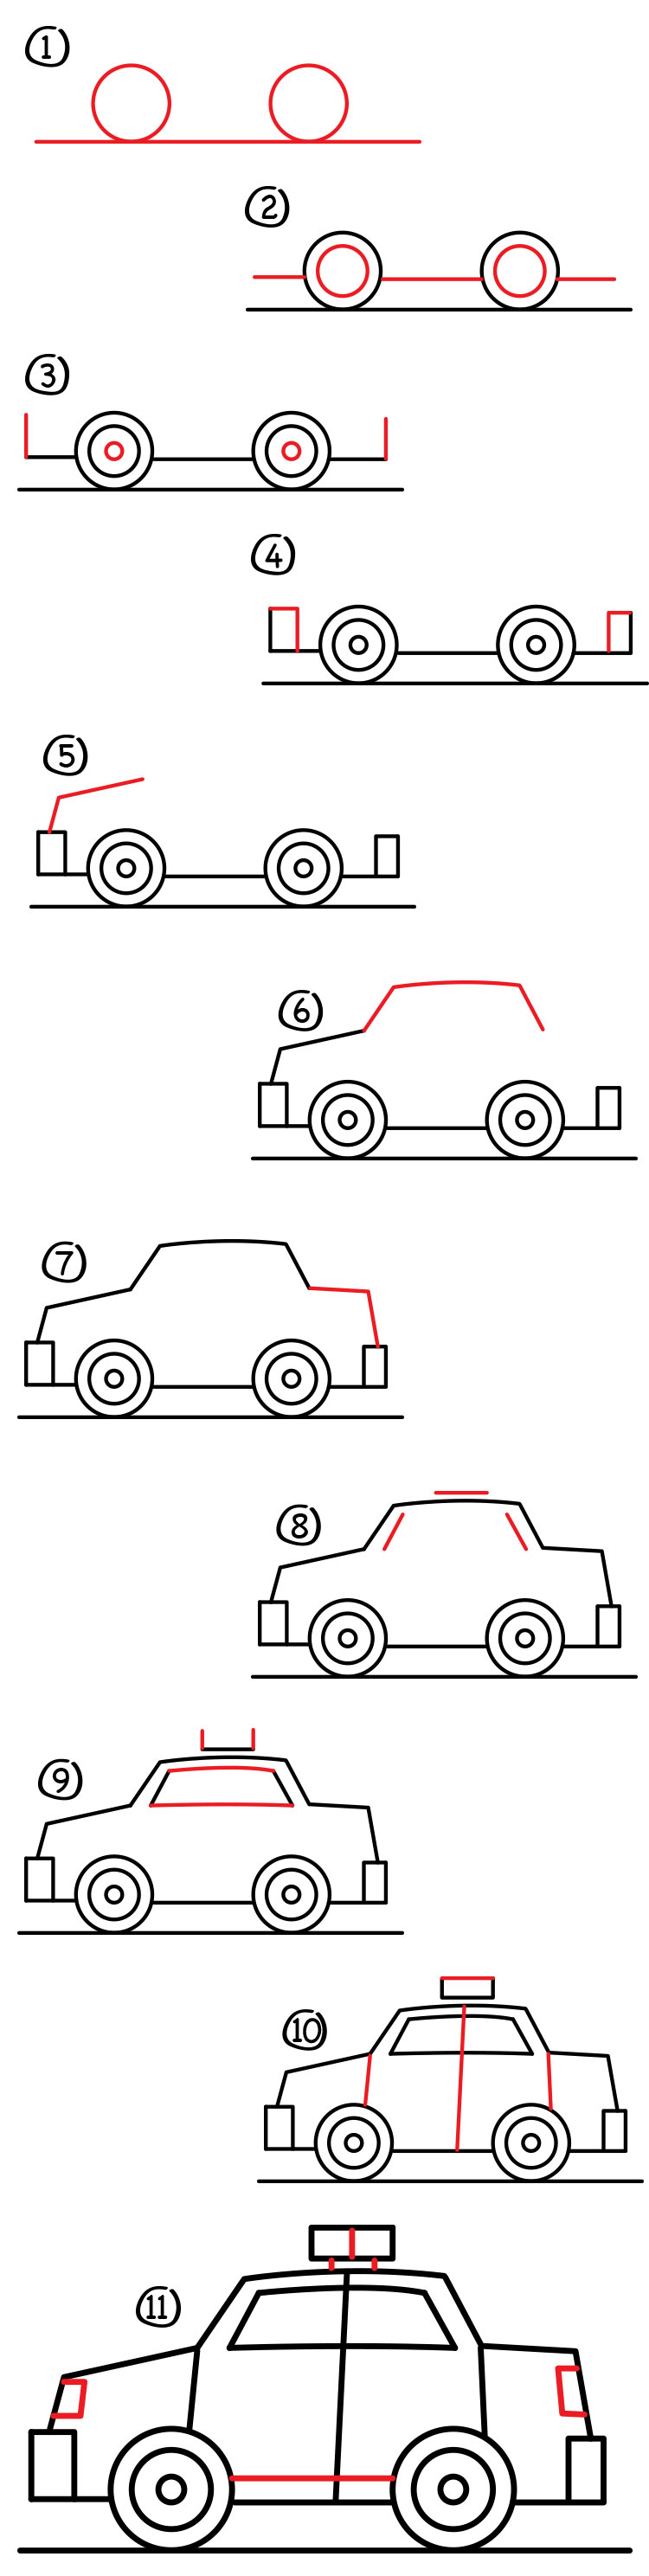 how to draw a police car step by step